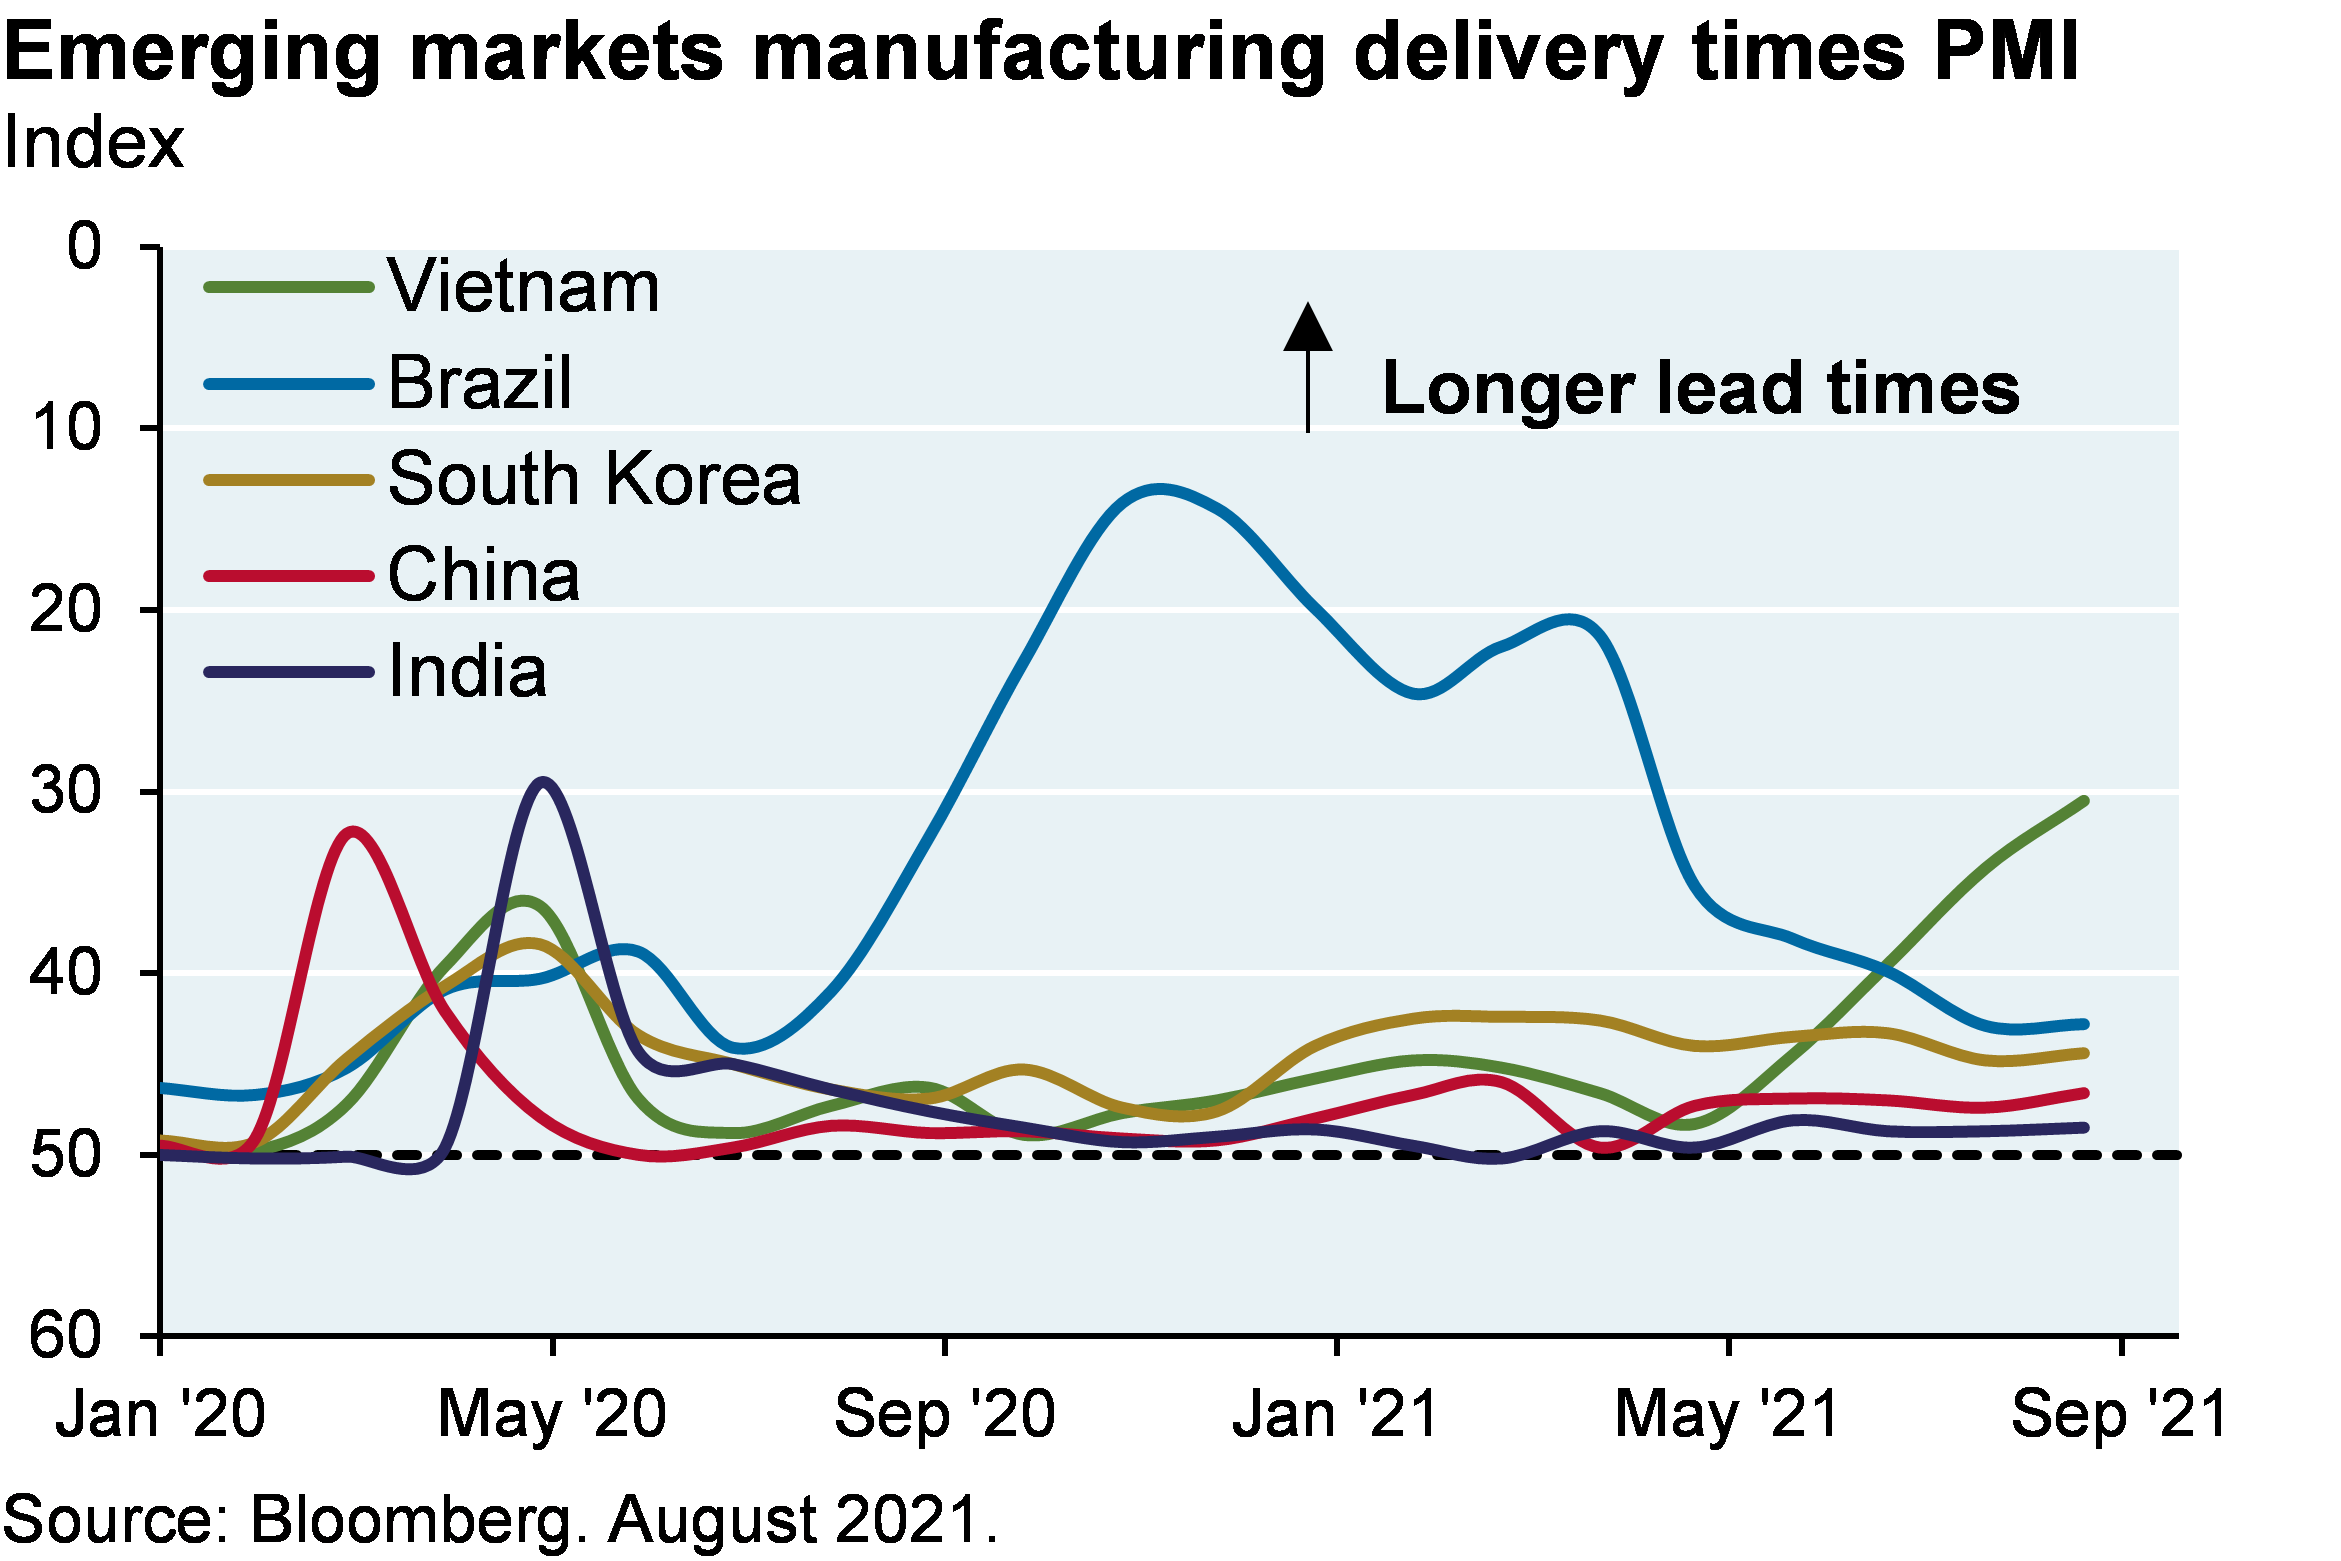 Line chart shows index levels for Vietnam, India, China, South Korea and Brazil manufacturing delivery times. After recovering from small increases in lead times at the start of COVID, delivery times have not changed significantly for India, China and South Korea. Brazil demonstrated a larger increase in delivery times (around 10 at its worst), but has recovered to about 42. Vietnam is currently seeing a spike in delivery times to around 30, after having been between 40 and 50 for most of the period since January 2020.